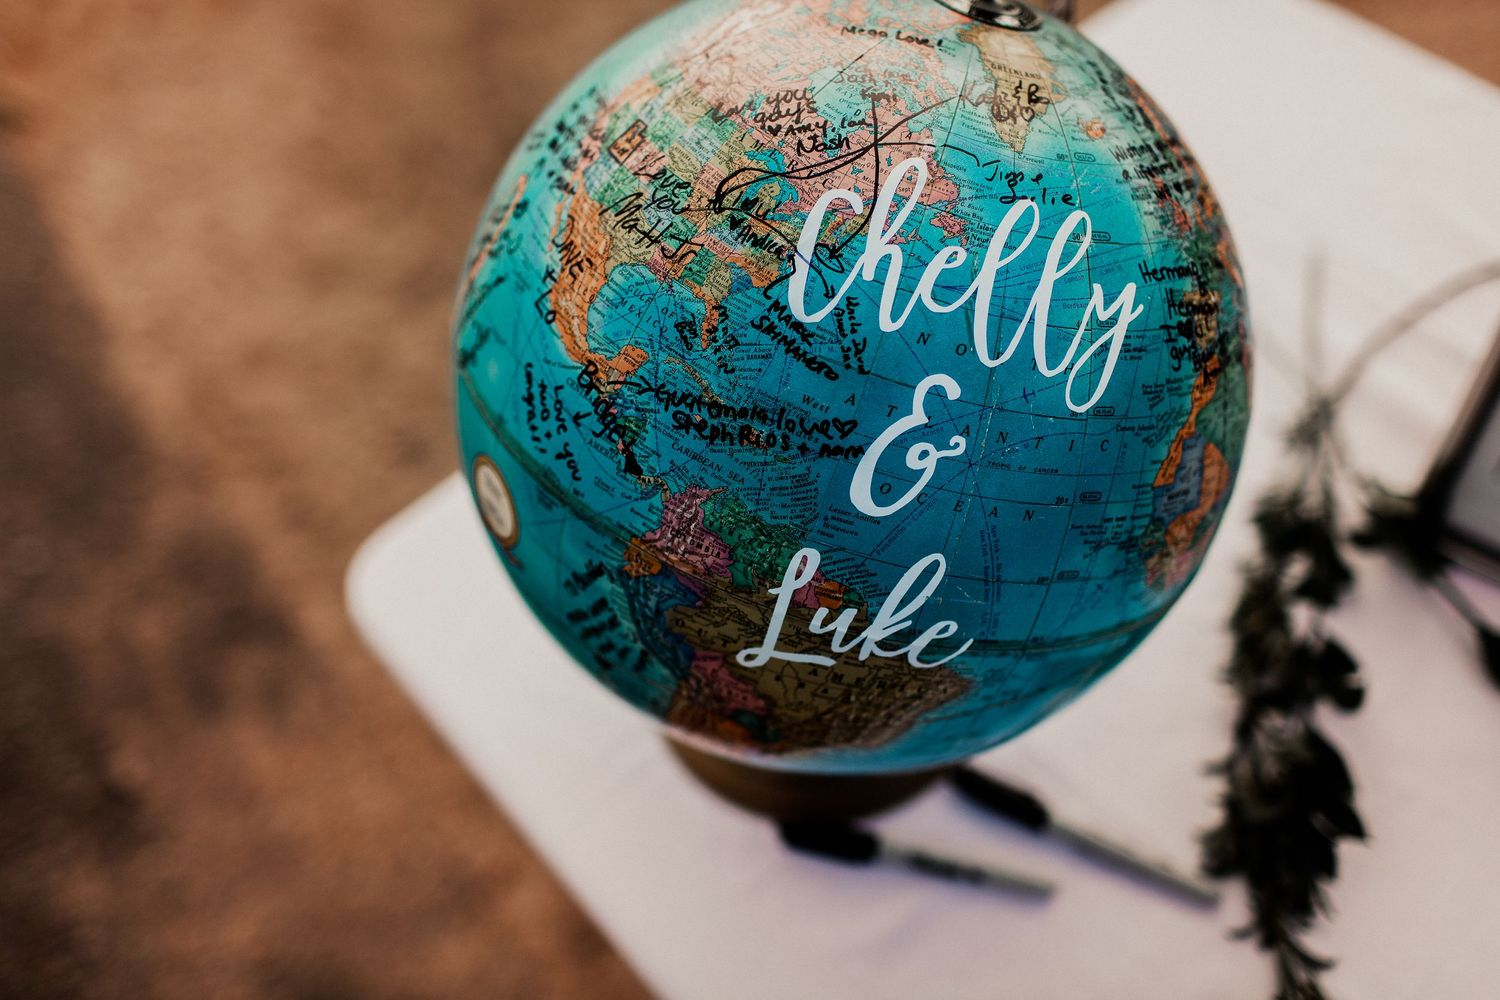 chelly and luke globe sign in at reception decor